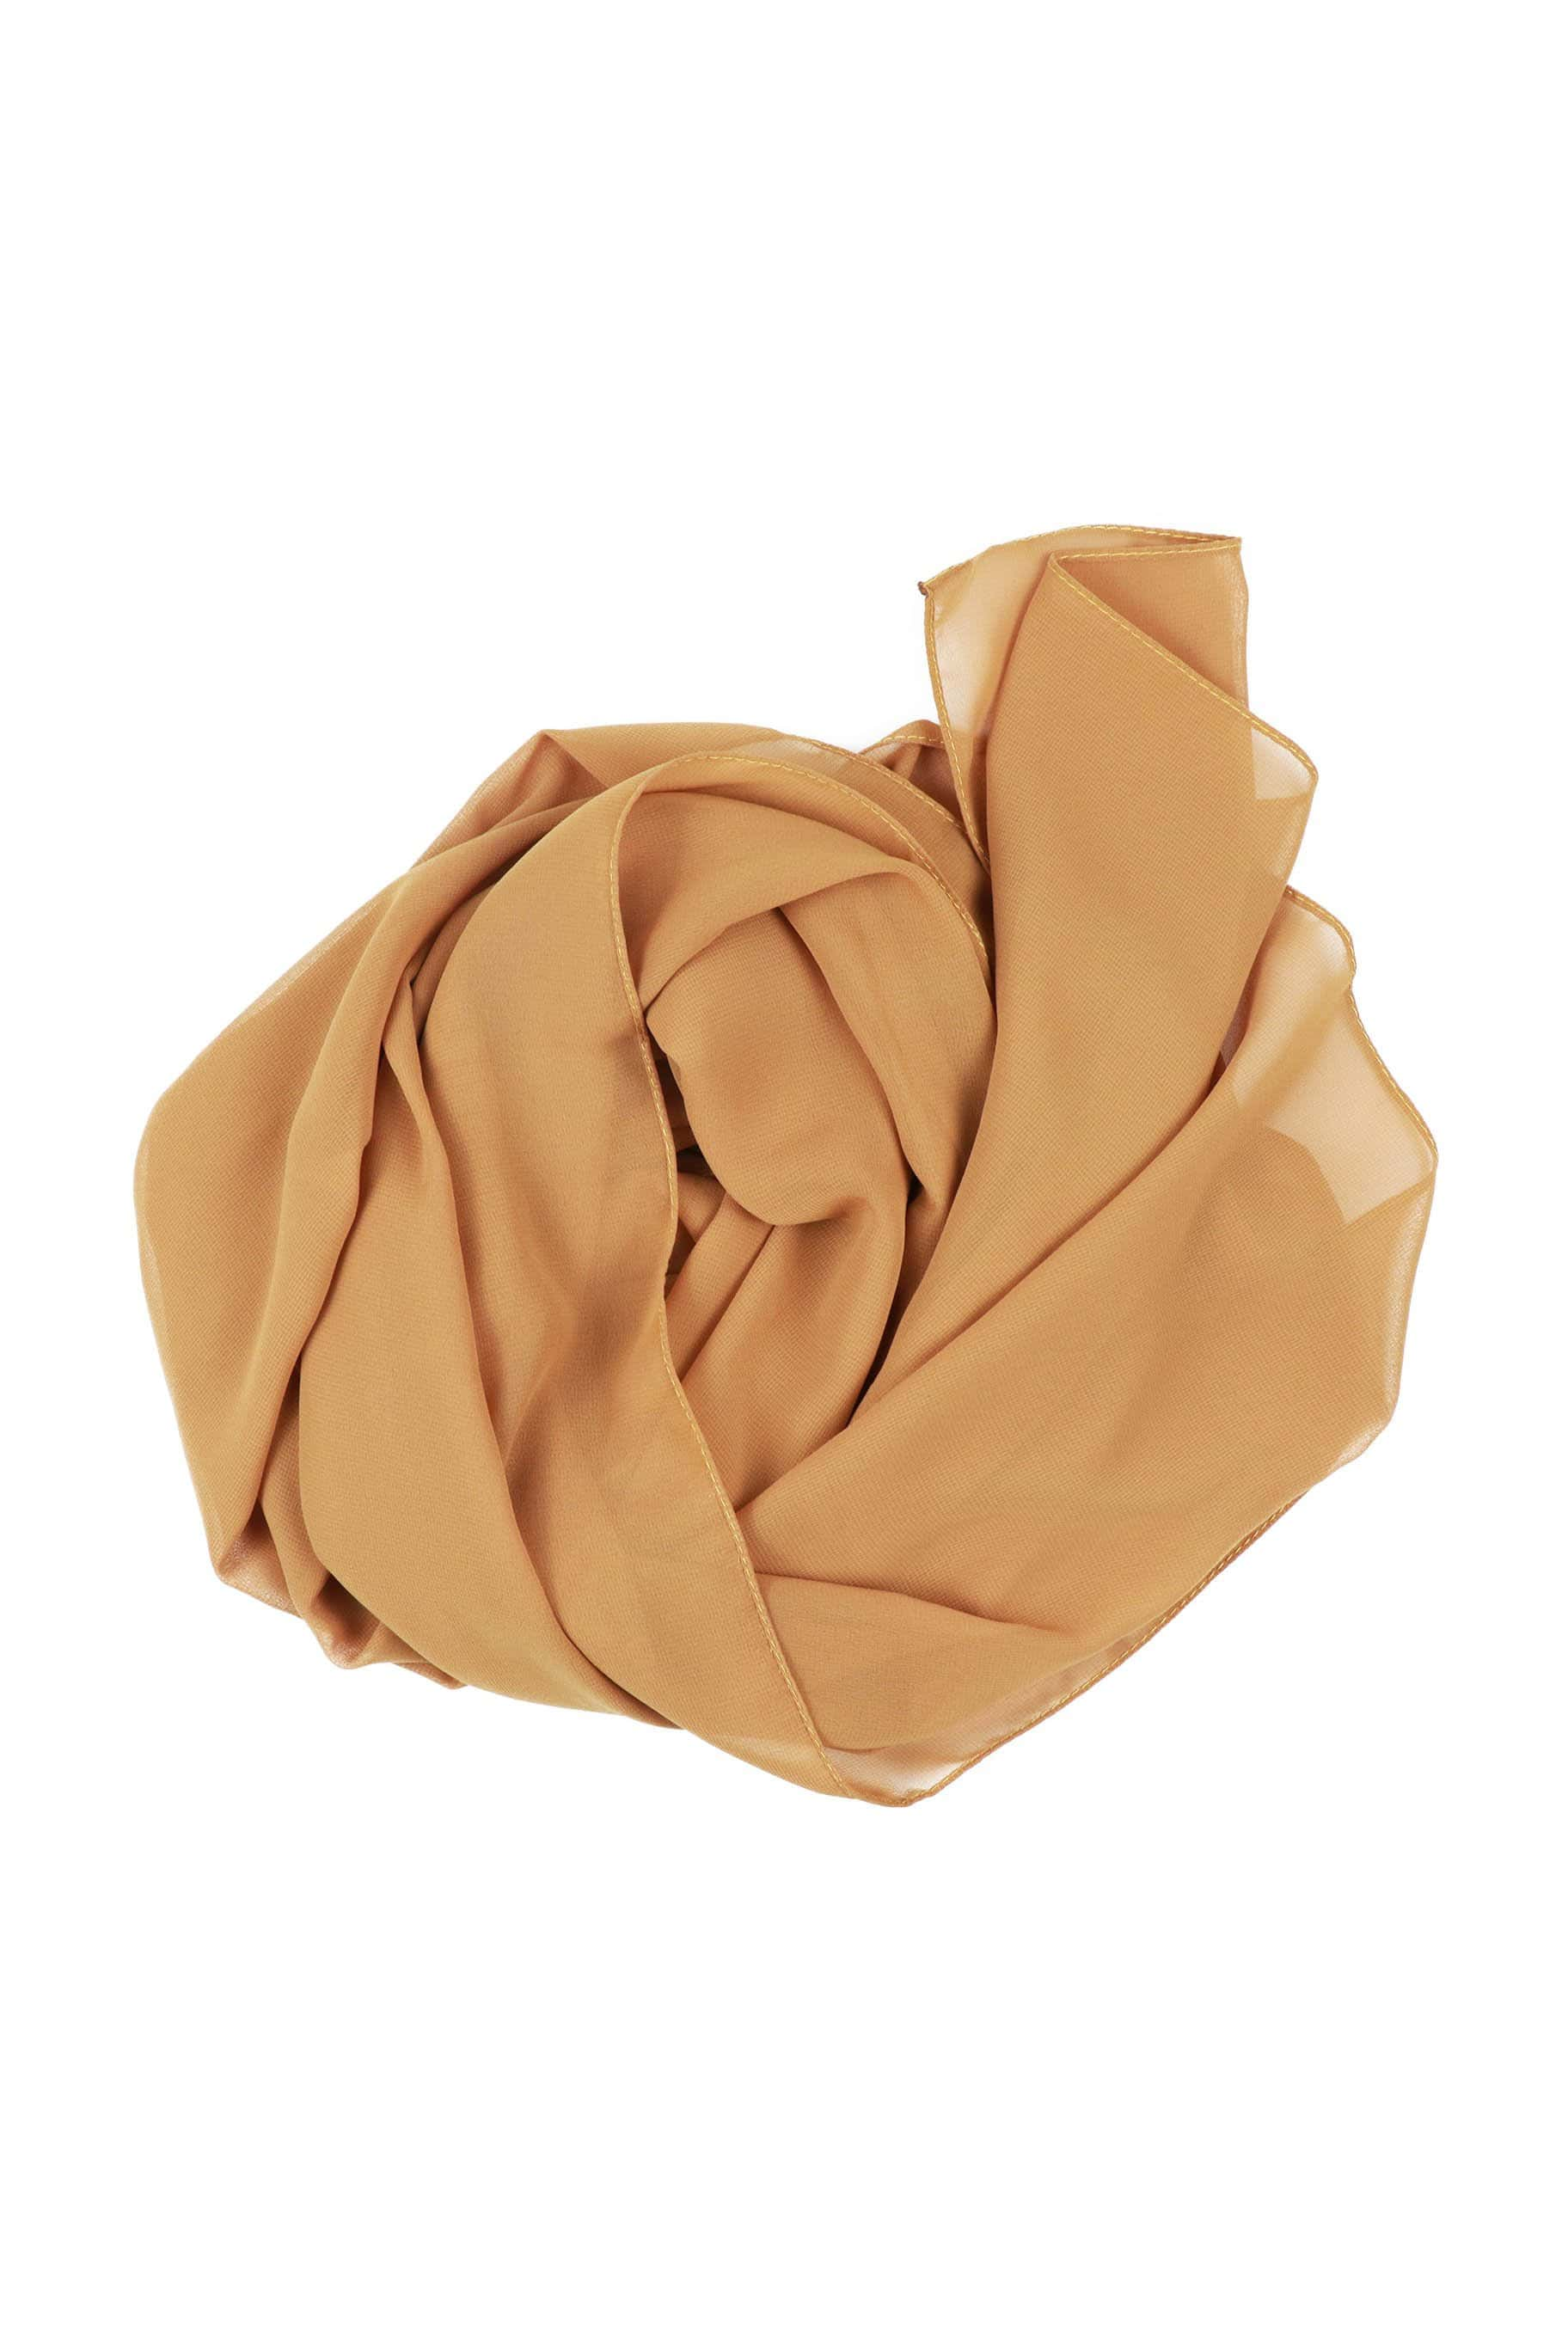 Chestnut Brown Chiffon Hijab - The Modest Look